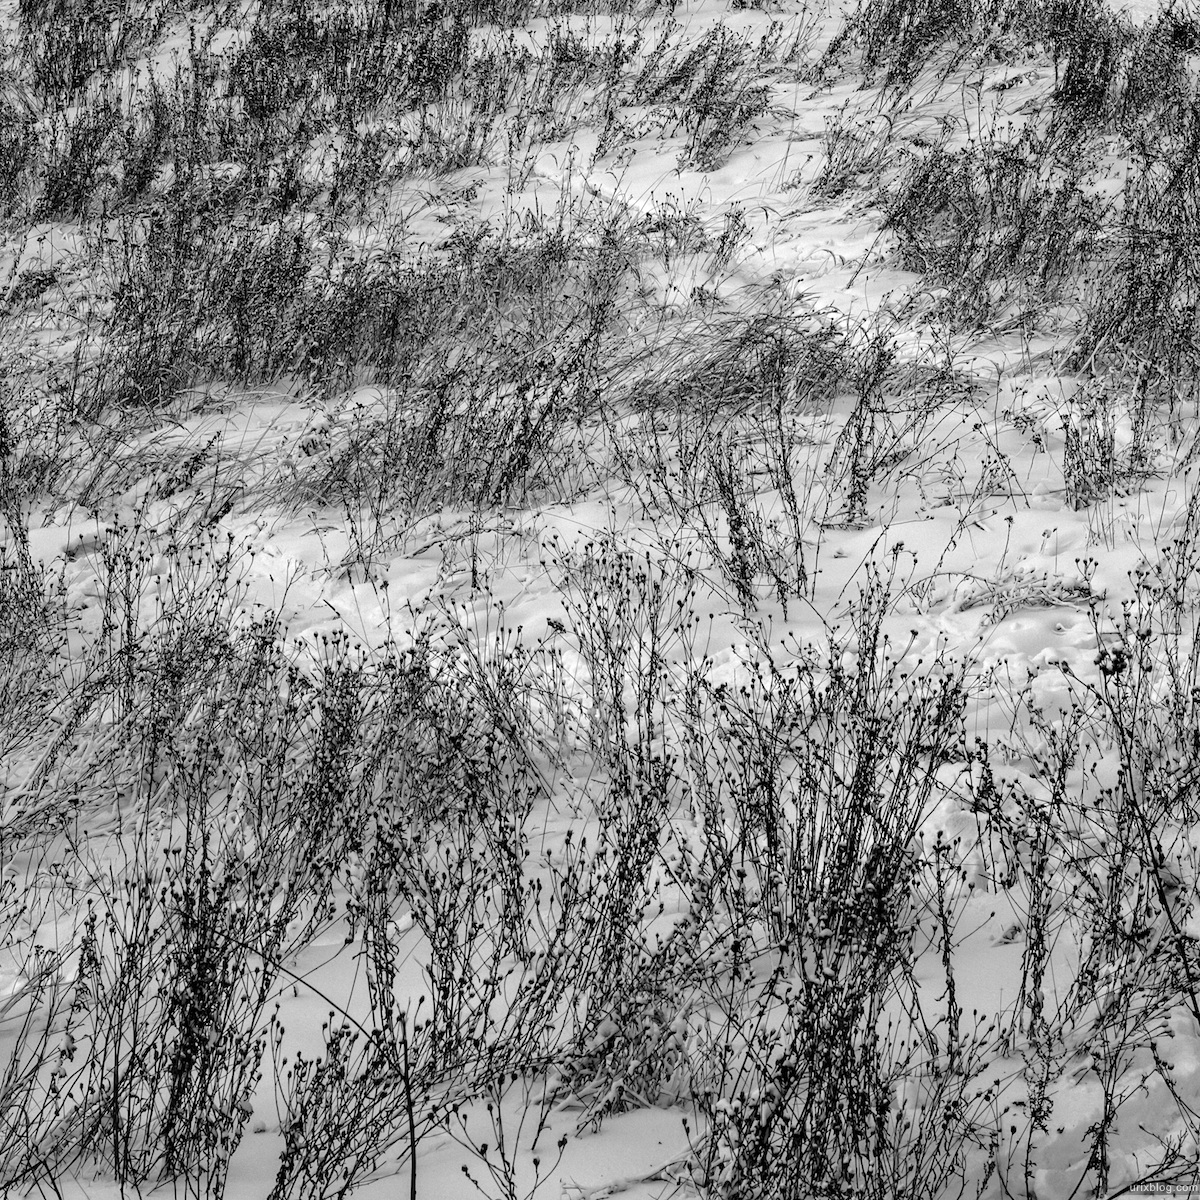 2012, Krylatsky hills, Moscow, Russia, winter, snow, grass